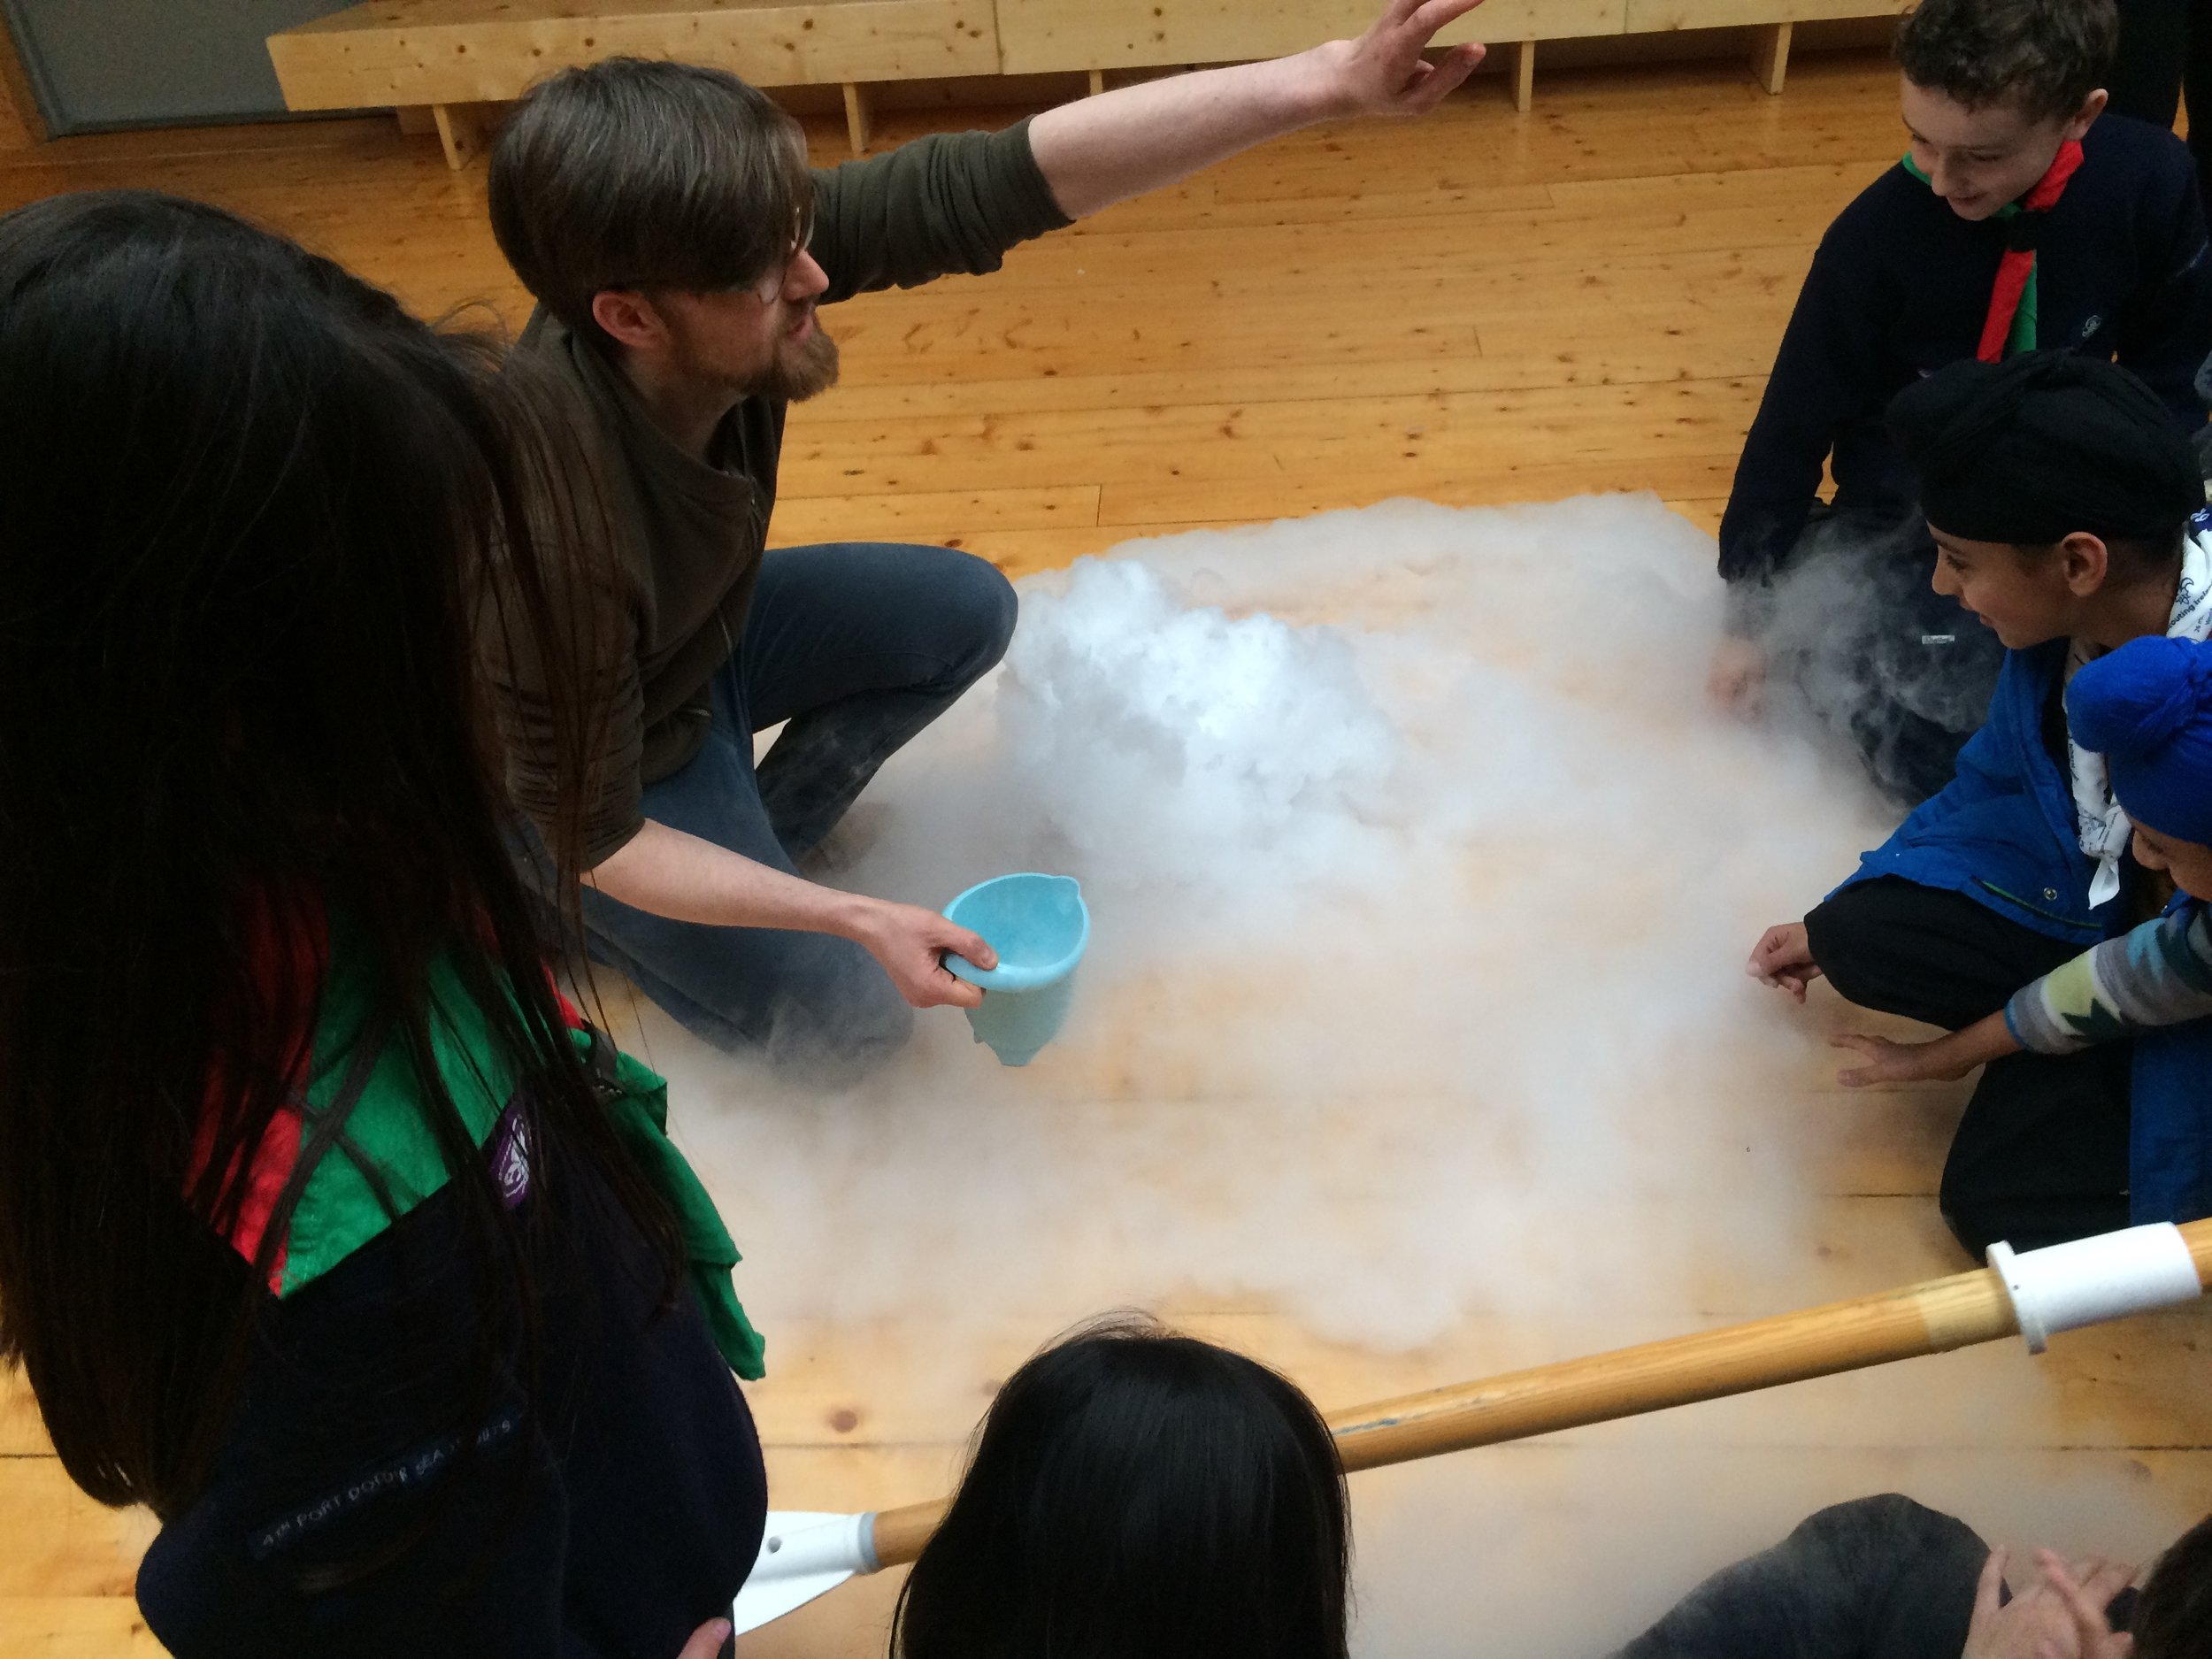 Dry ice was used to create the effect of the sea, in a recreation of a scene from the film Titanic